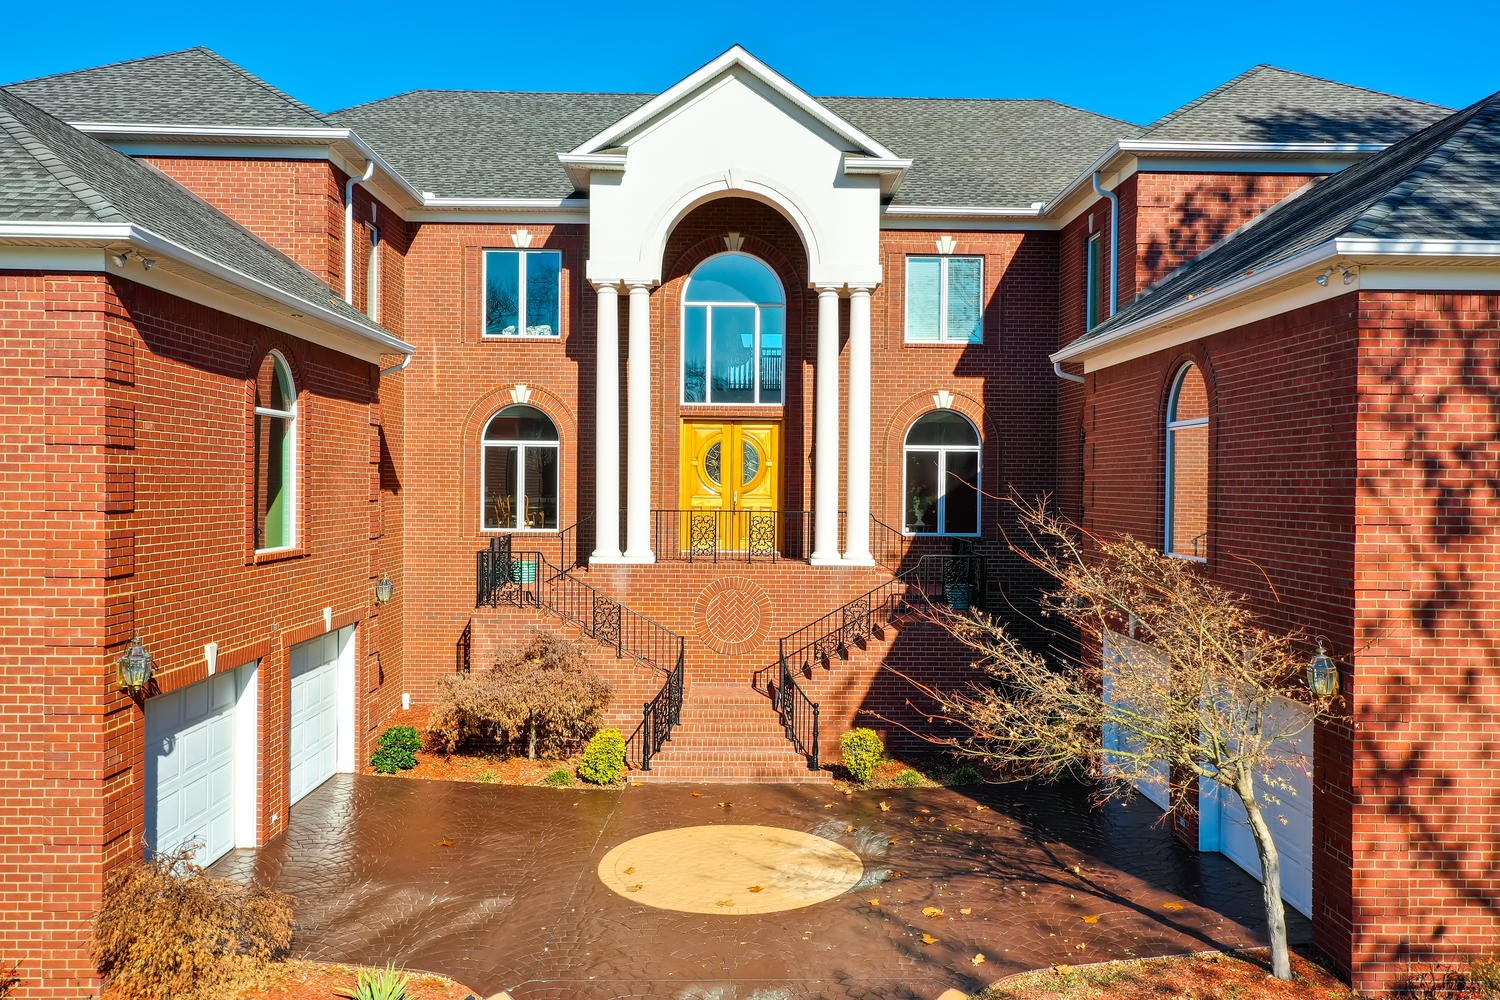 45 Harbor Cove Dr, Old Hickory, TN 37138 - Old Hickory, TN real estate listing